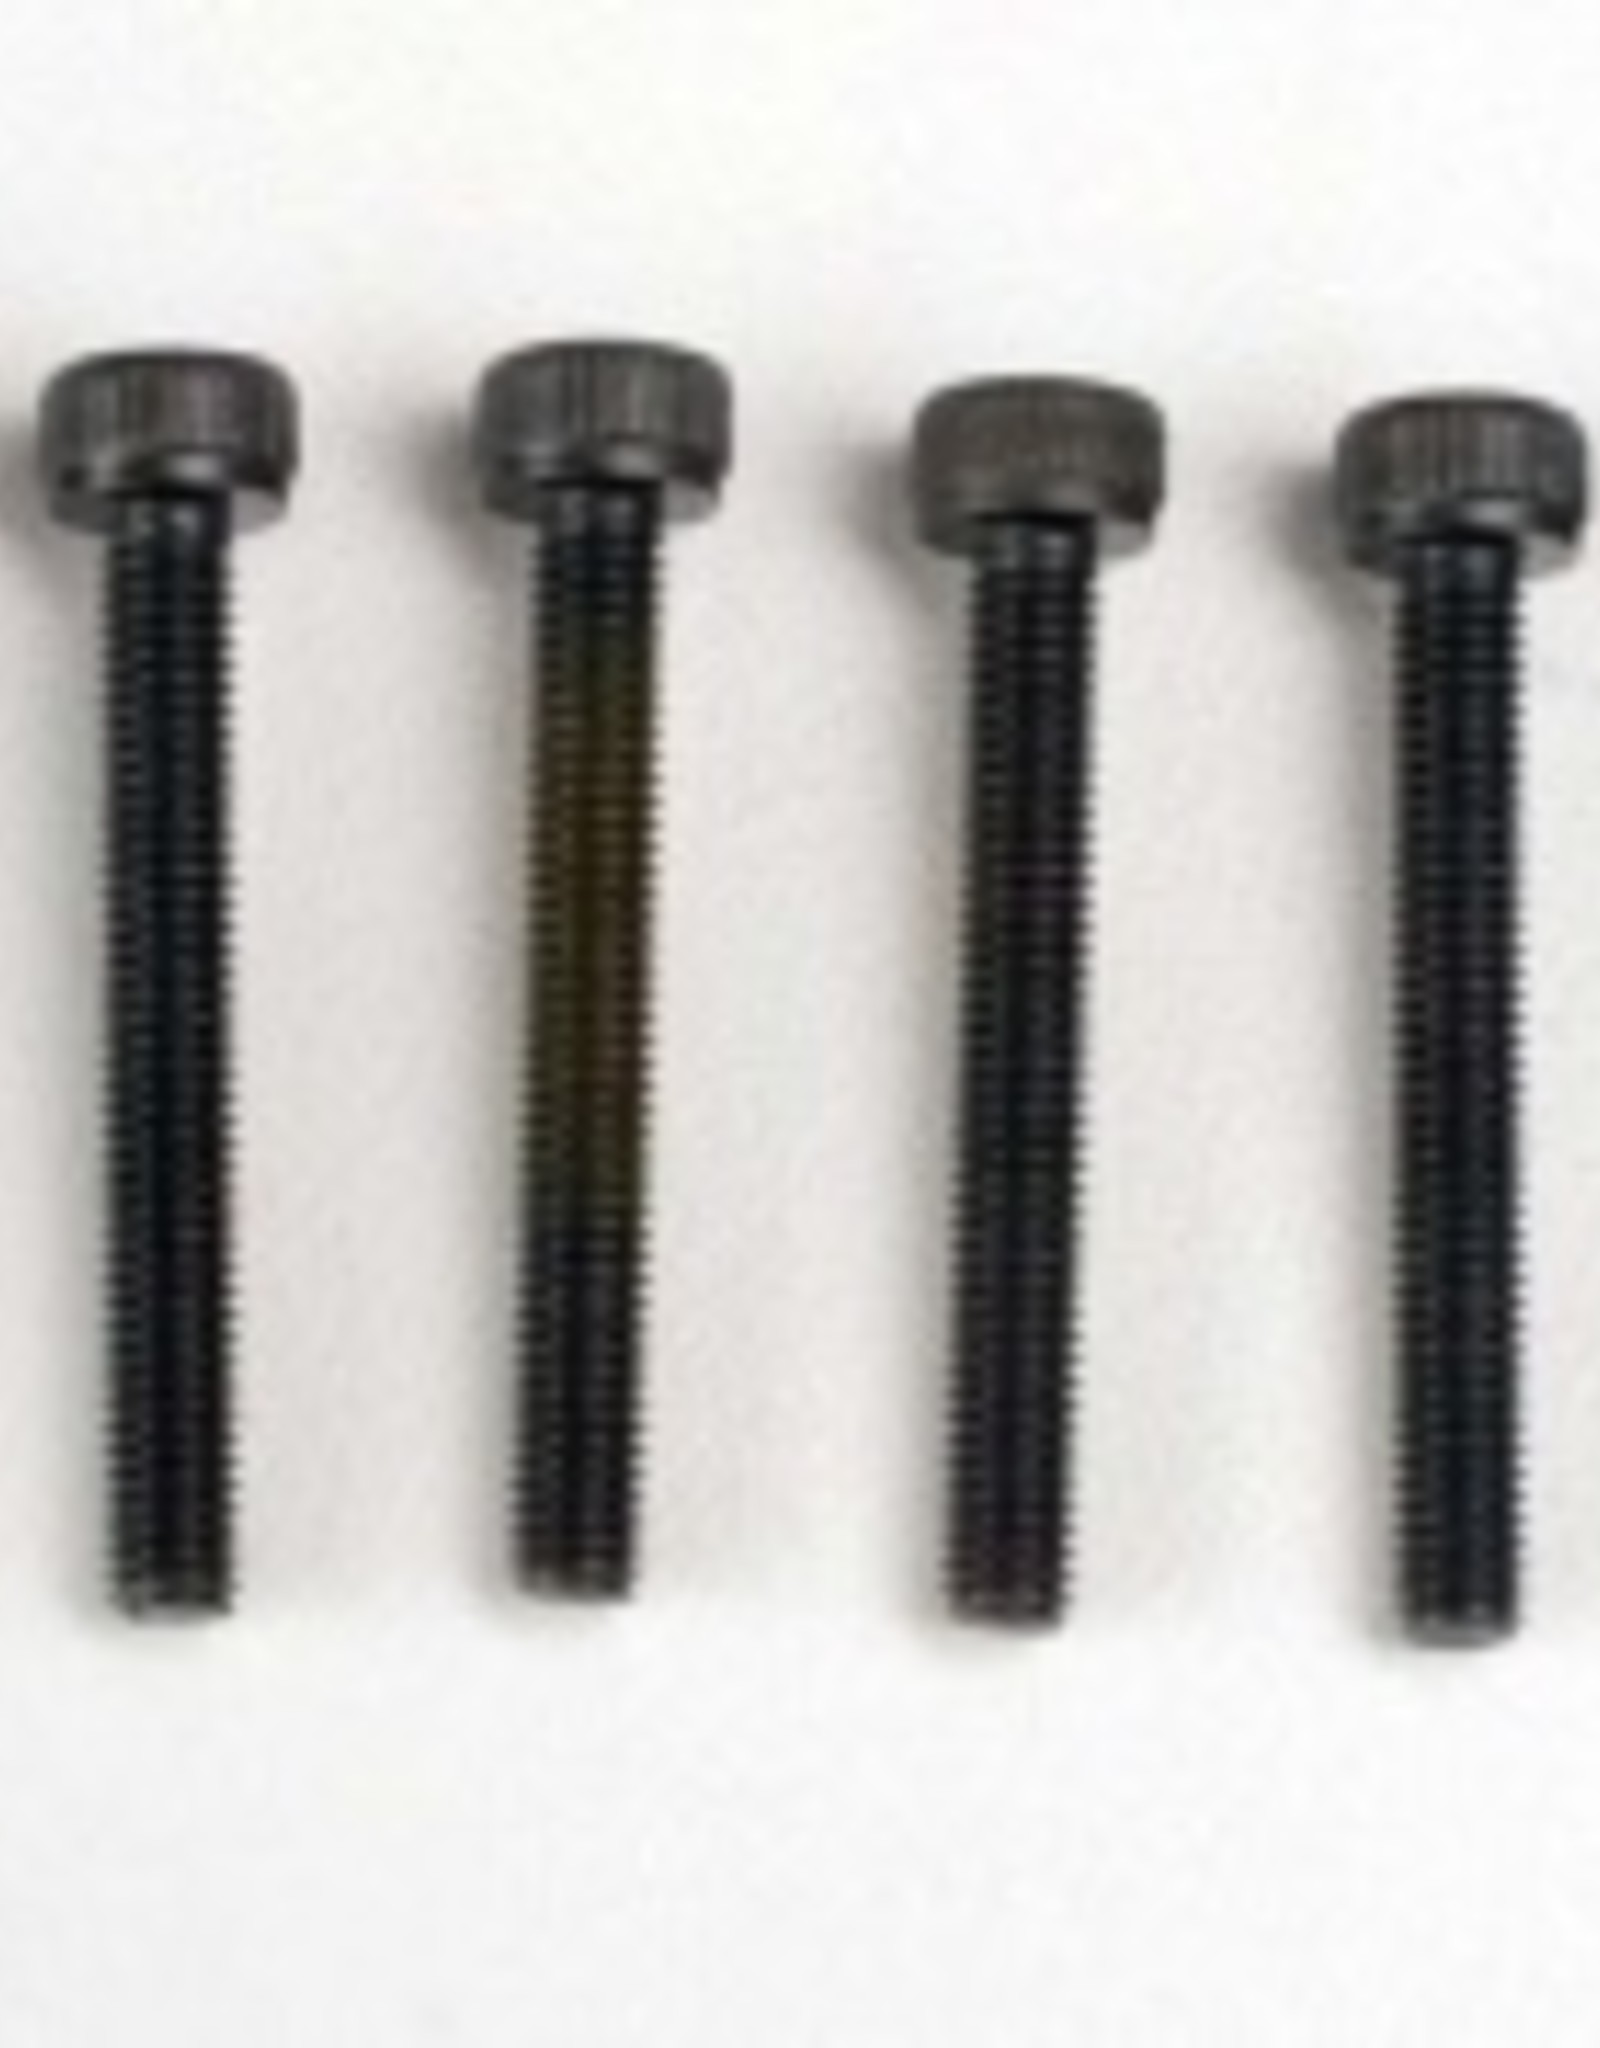 Traxxas Traxxas Header screws, 3x23mm cap hex screws (6)